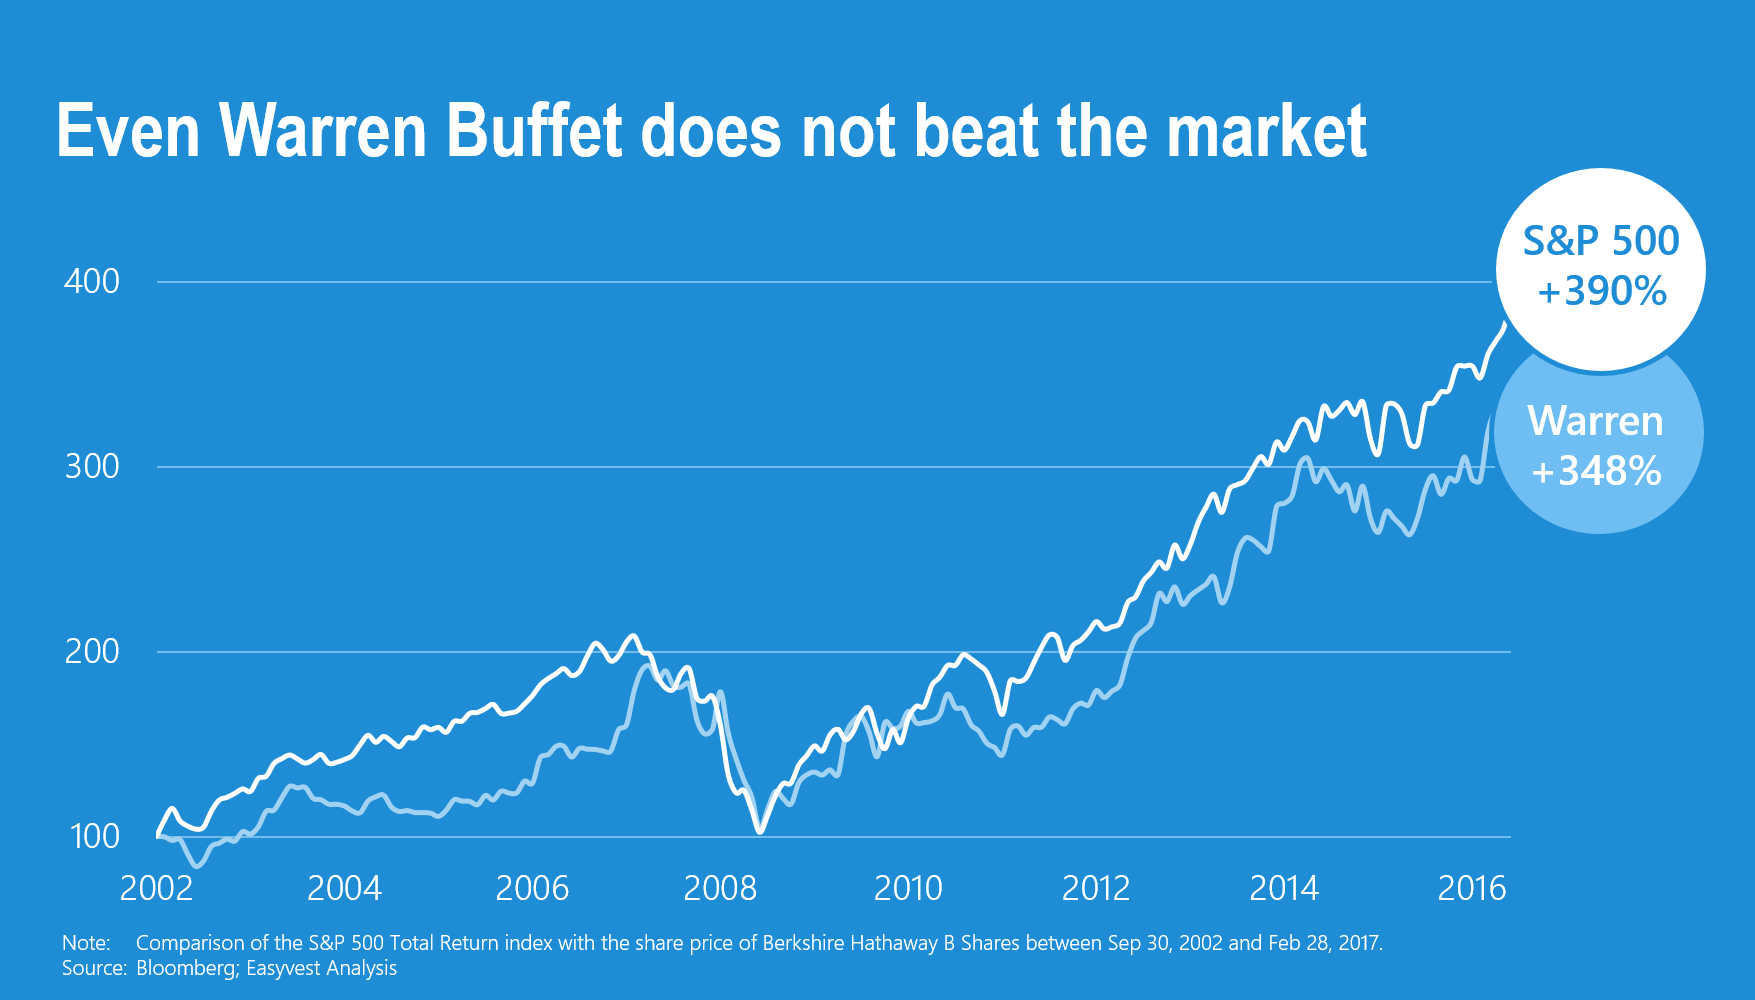 The best investor in the world has not beaten the market for 15 years